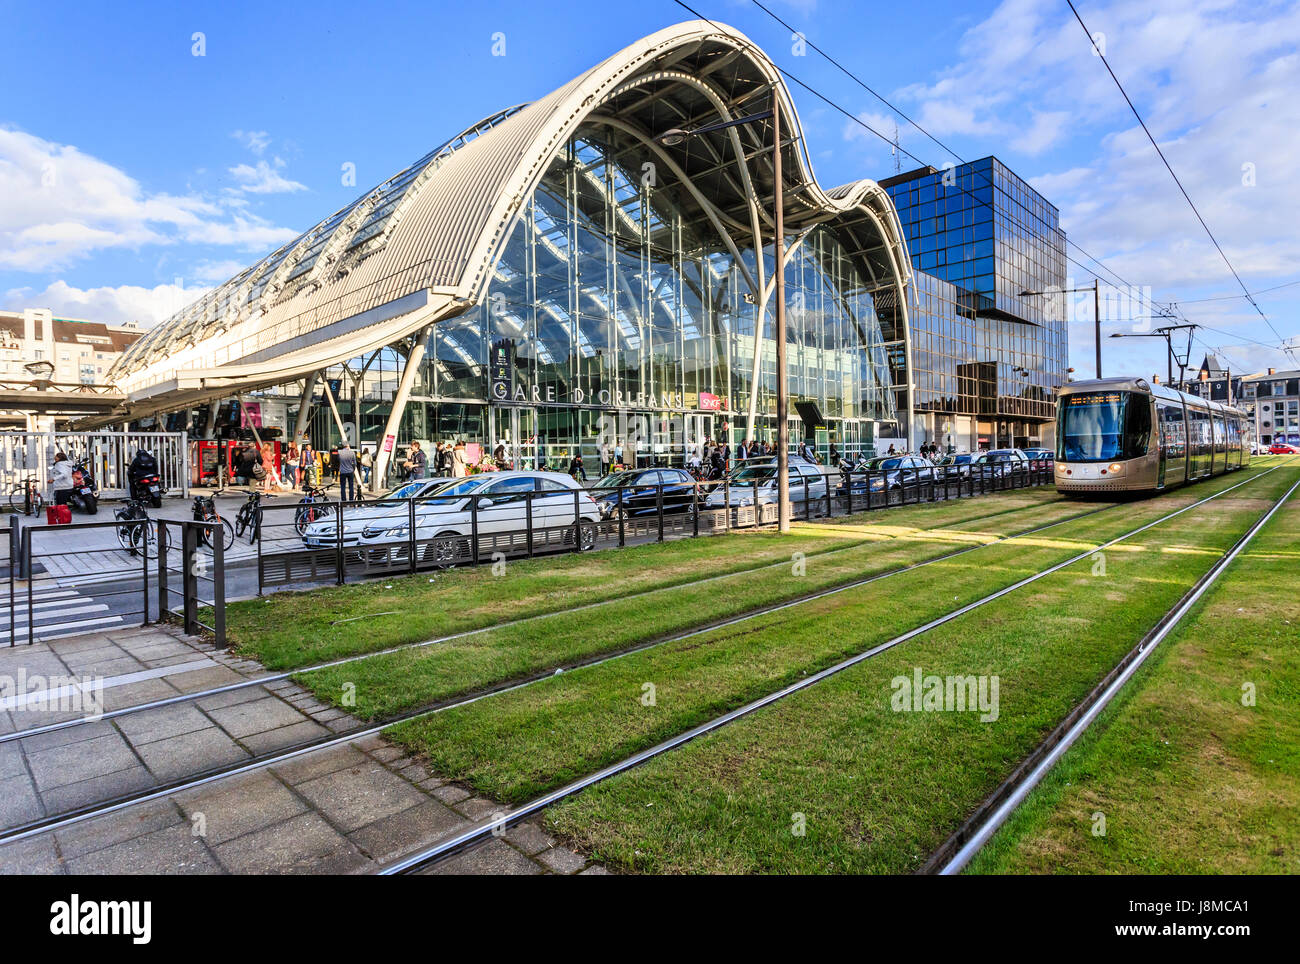 France, Loiret, Orleans, the train station and tram Stock Photo